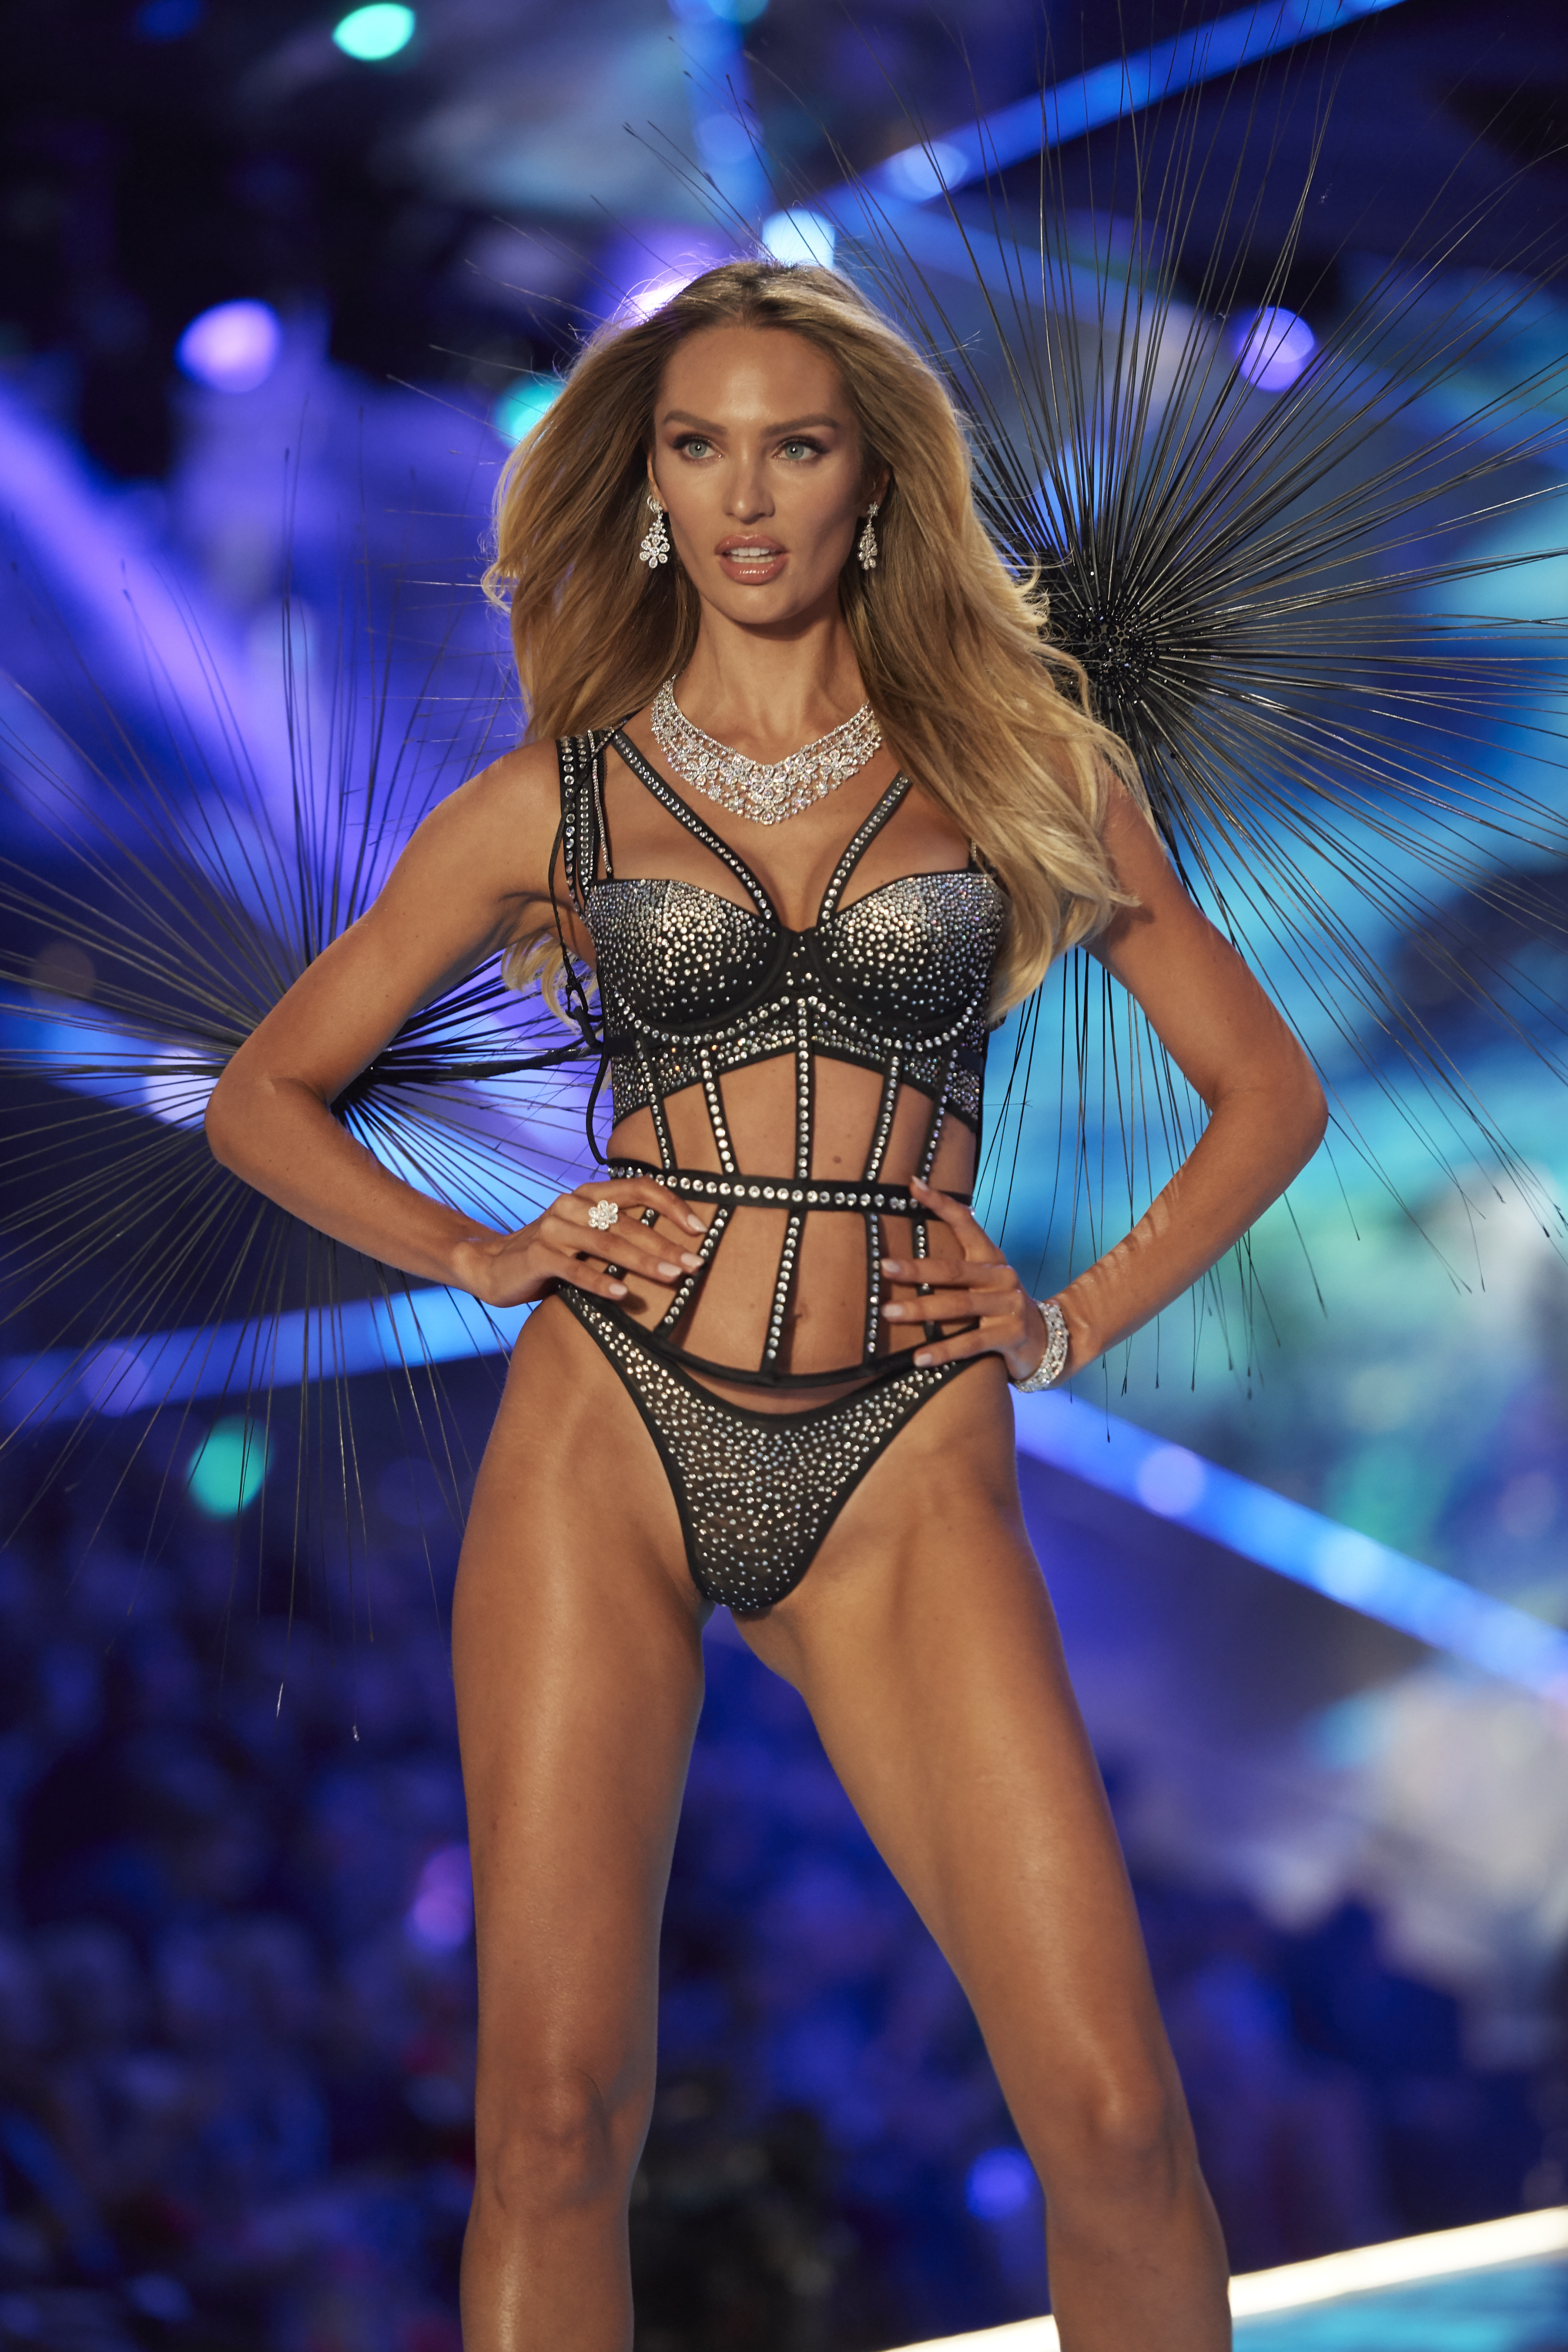 eb23f06f2 Candice Swanepoel walks the runway during the 2018 Victoria s Secret  Fashion Show at Pier 94 on November 8